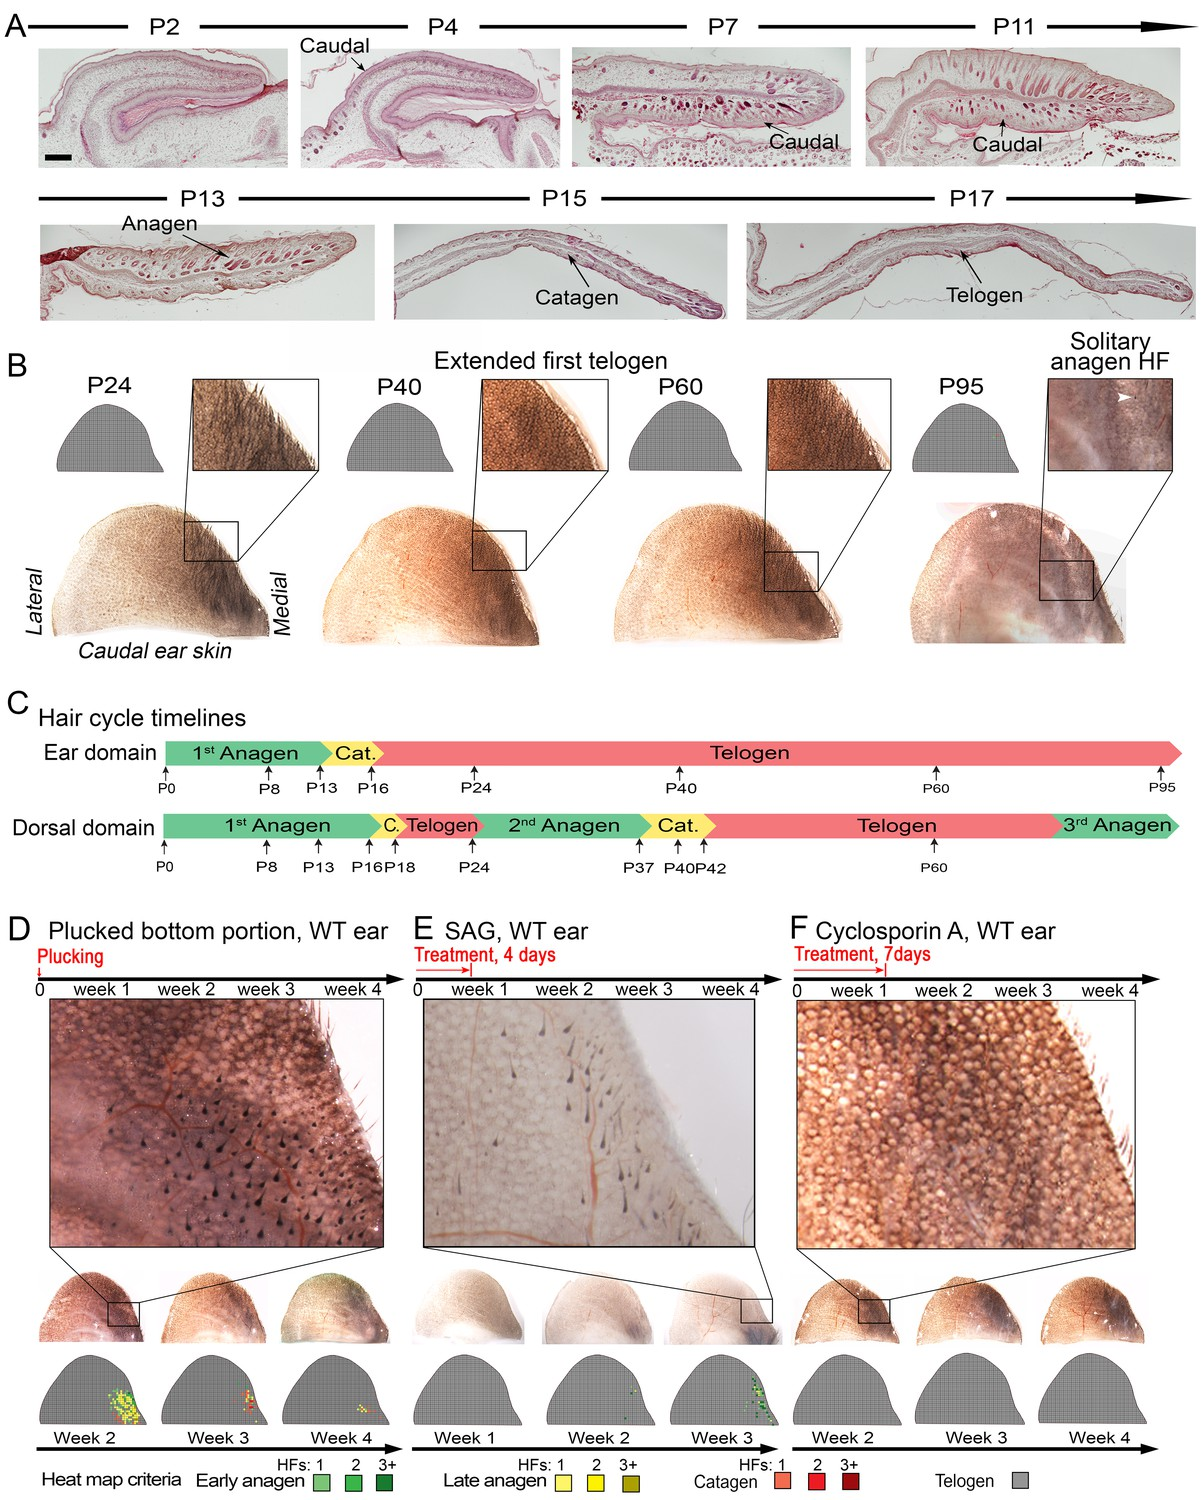 A multi-scale model for hair follicles reveals heterogeneous domains